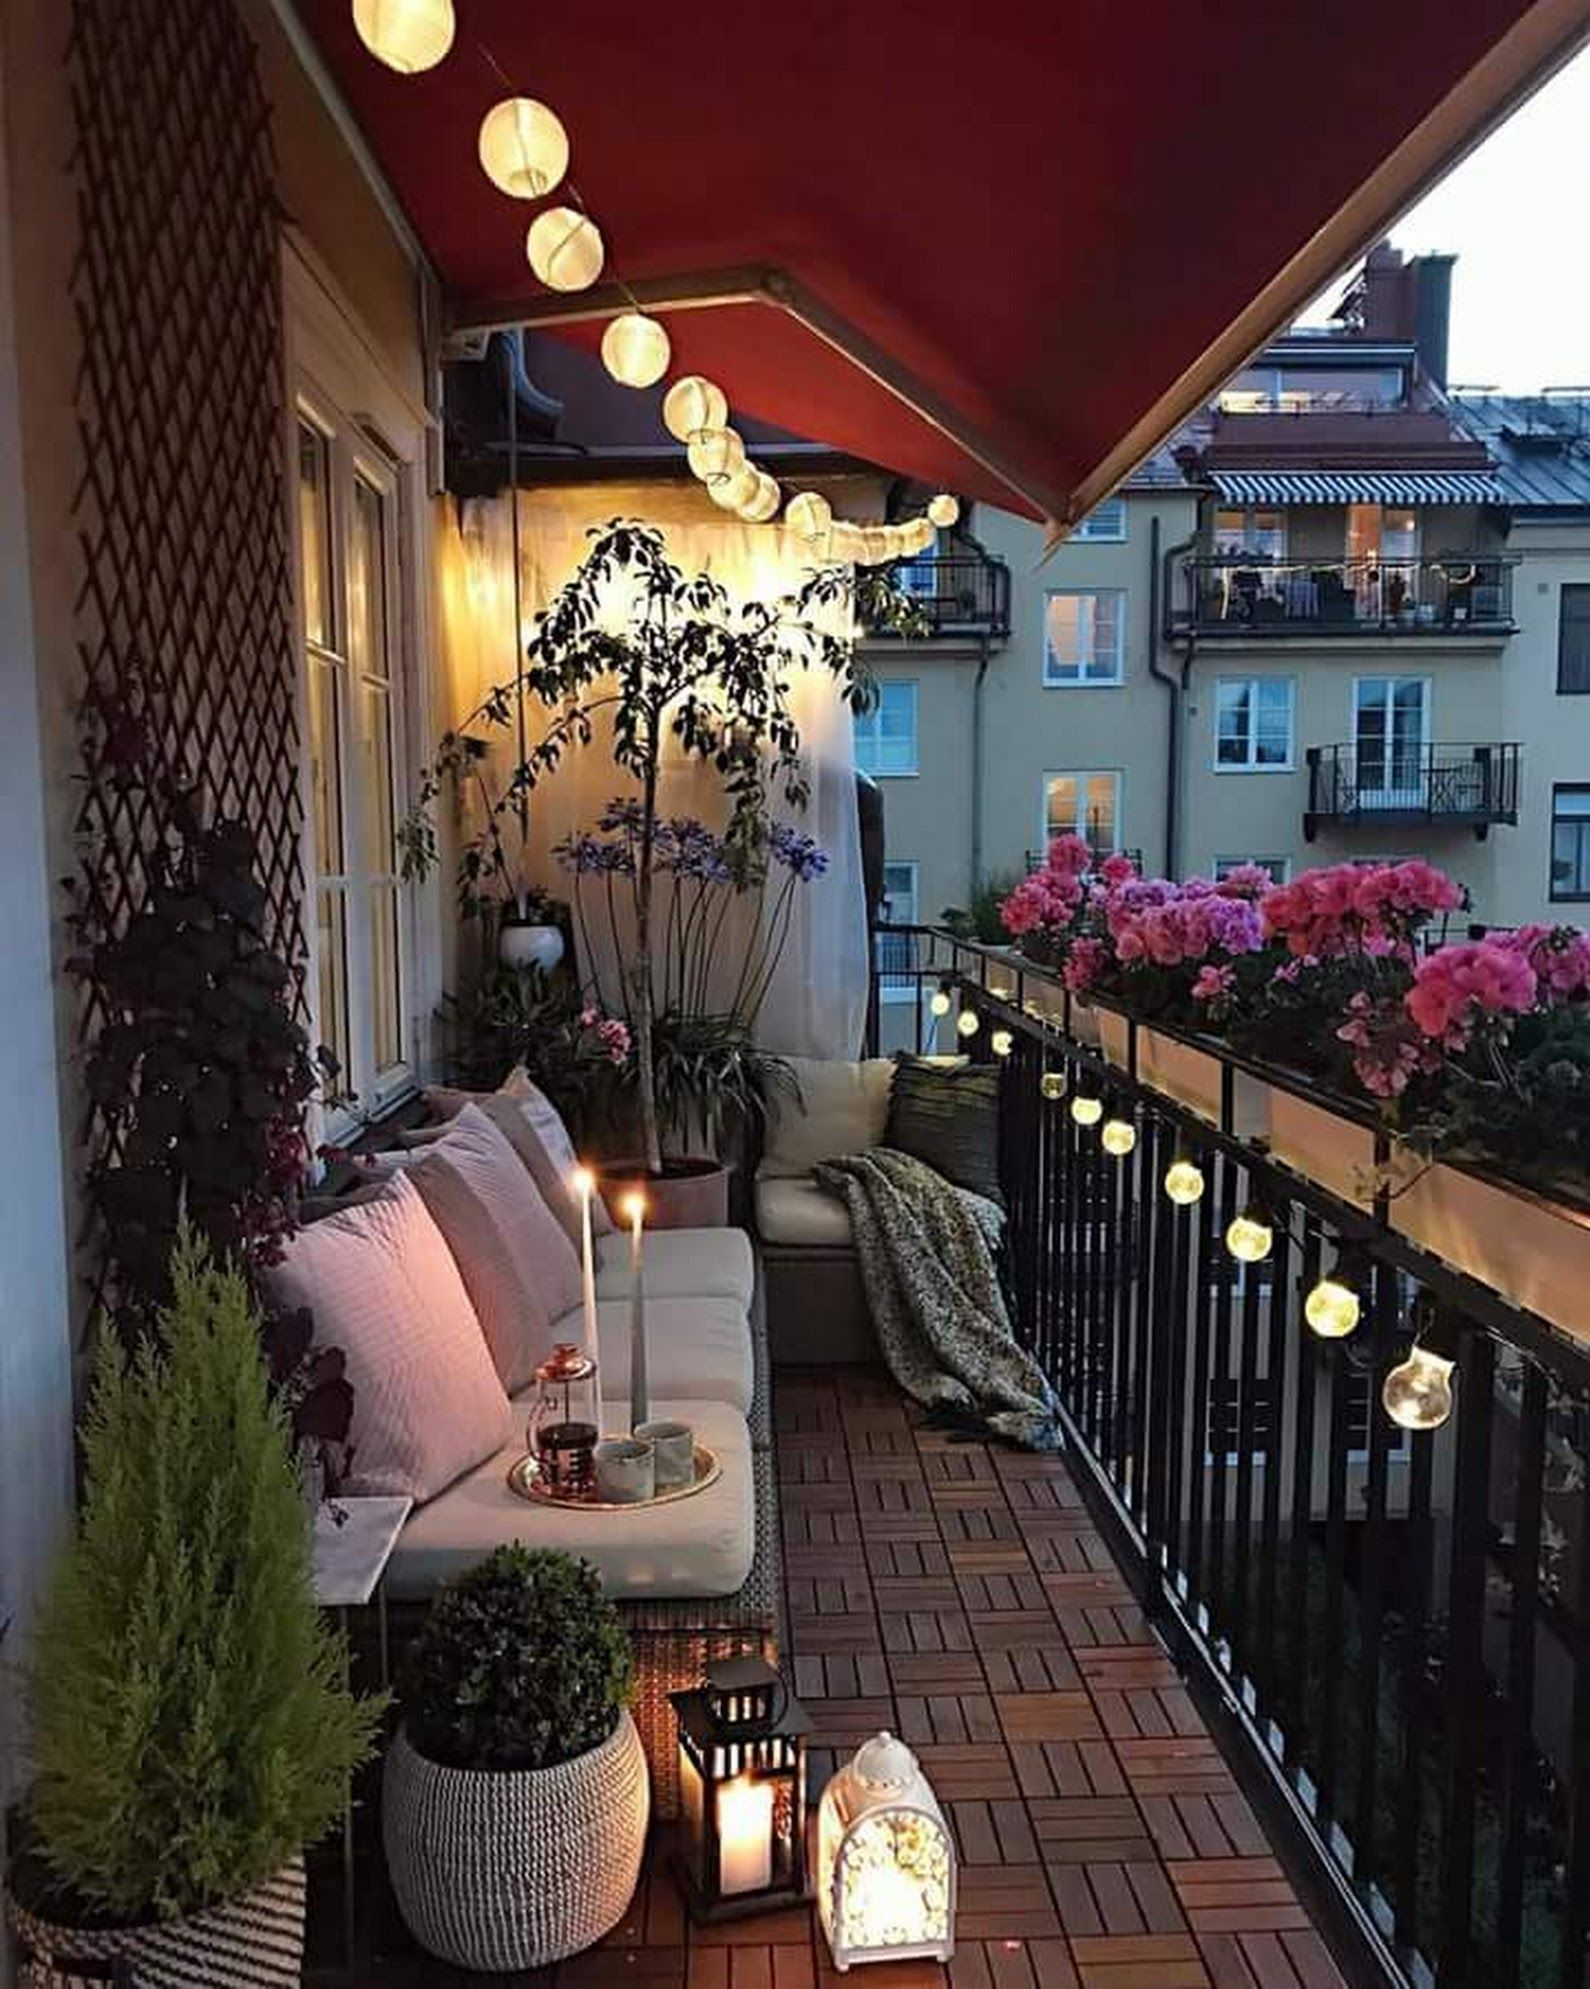 the best decorated small outdoor balconies on pinterest small balcony decor balcony design on christmas balcony decorations apartment patio id=23108